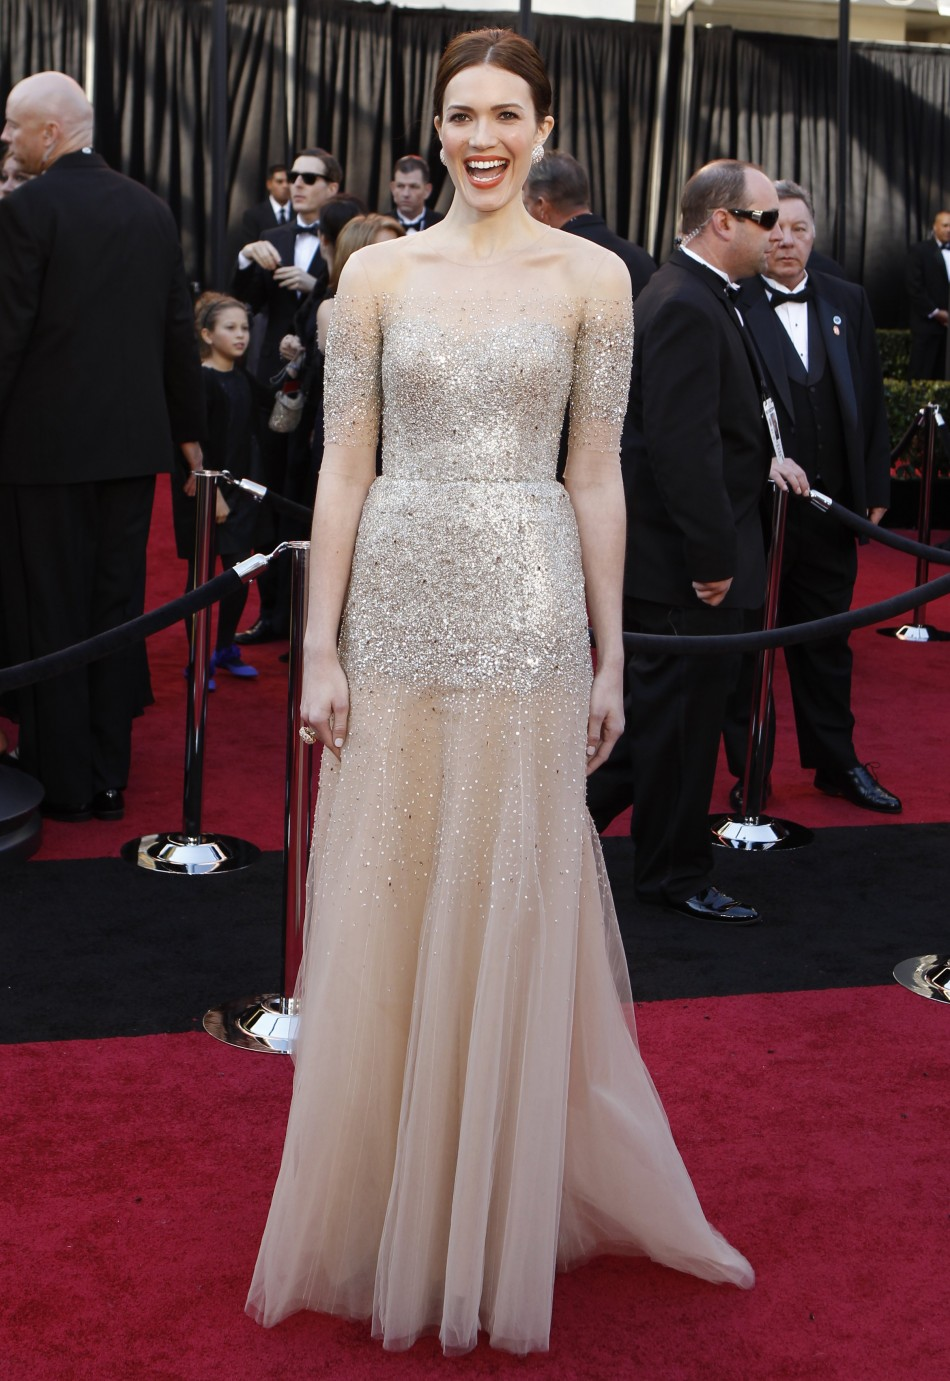 Mandy Moore arrives at the 83rd Academy Awards in Hollywood